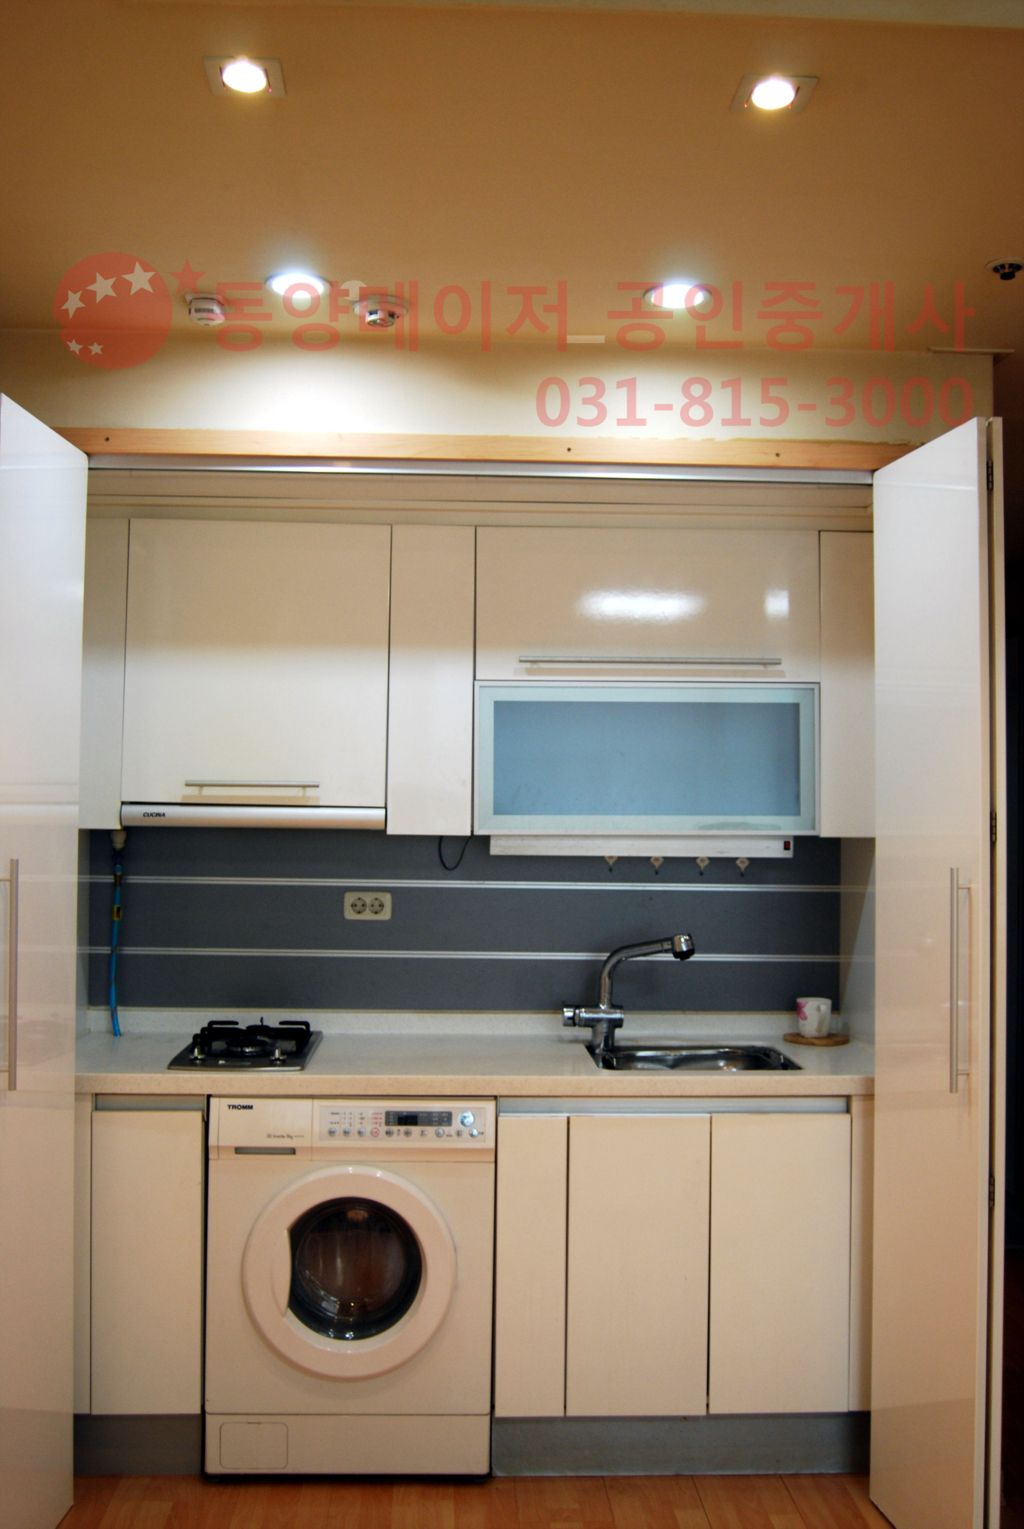 a typical kitchen in an officetel in seoul small but has everything you need http amzn to on kitchen decor korea id=74929